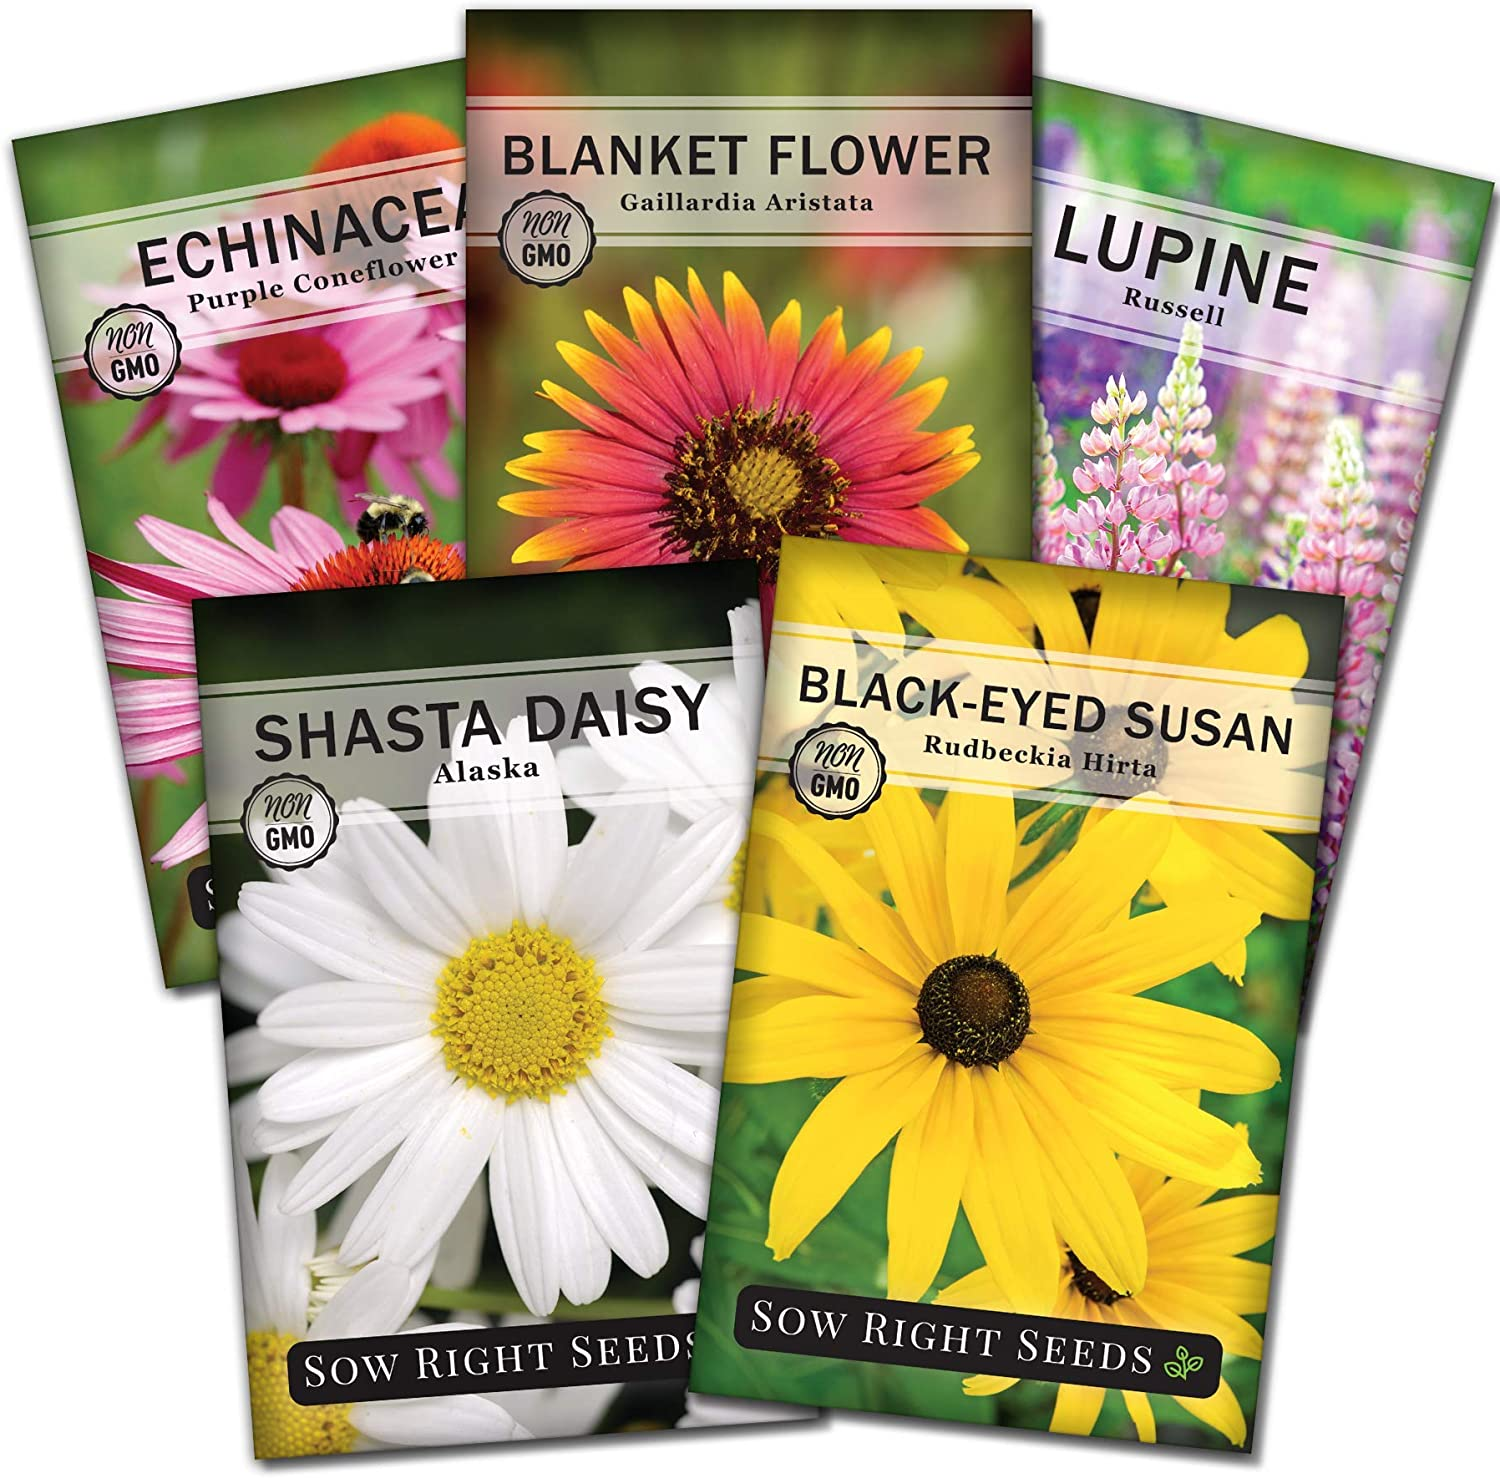 Sow Right Seeds - Perennial Flower Garden Collection for Planting - Russell Lupine, Black-Eyed Susan, Shasta Daisy, Purple Coneflower, and Blanket Flower; Heirloom Seeds, Wonderful Gardening Gift